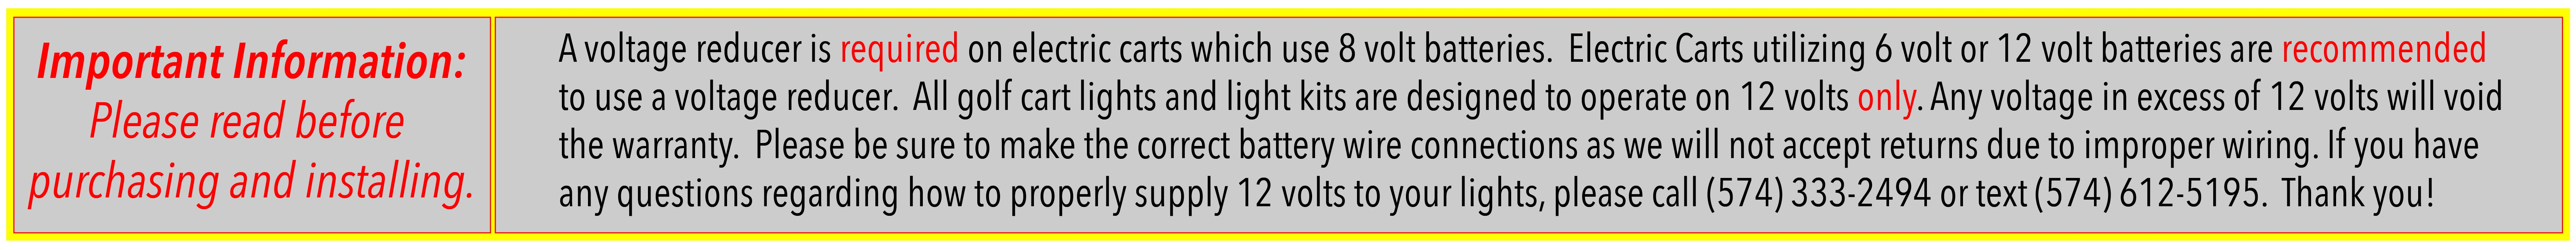 "Warning label created for installing lights and accessories ""12 volts only""."